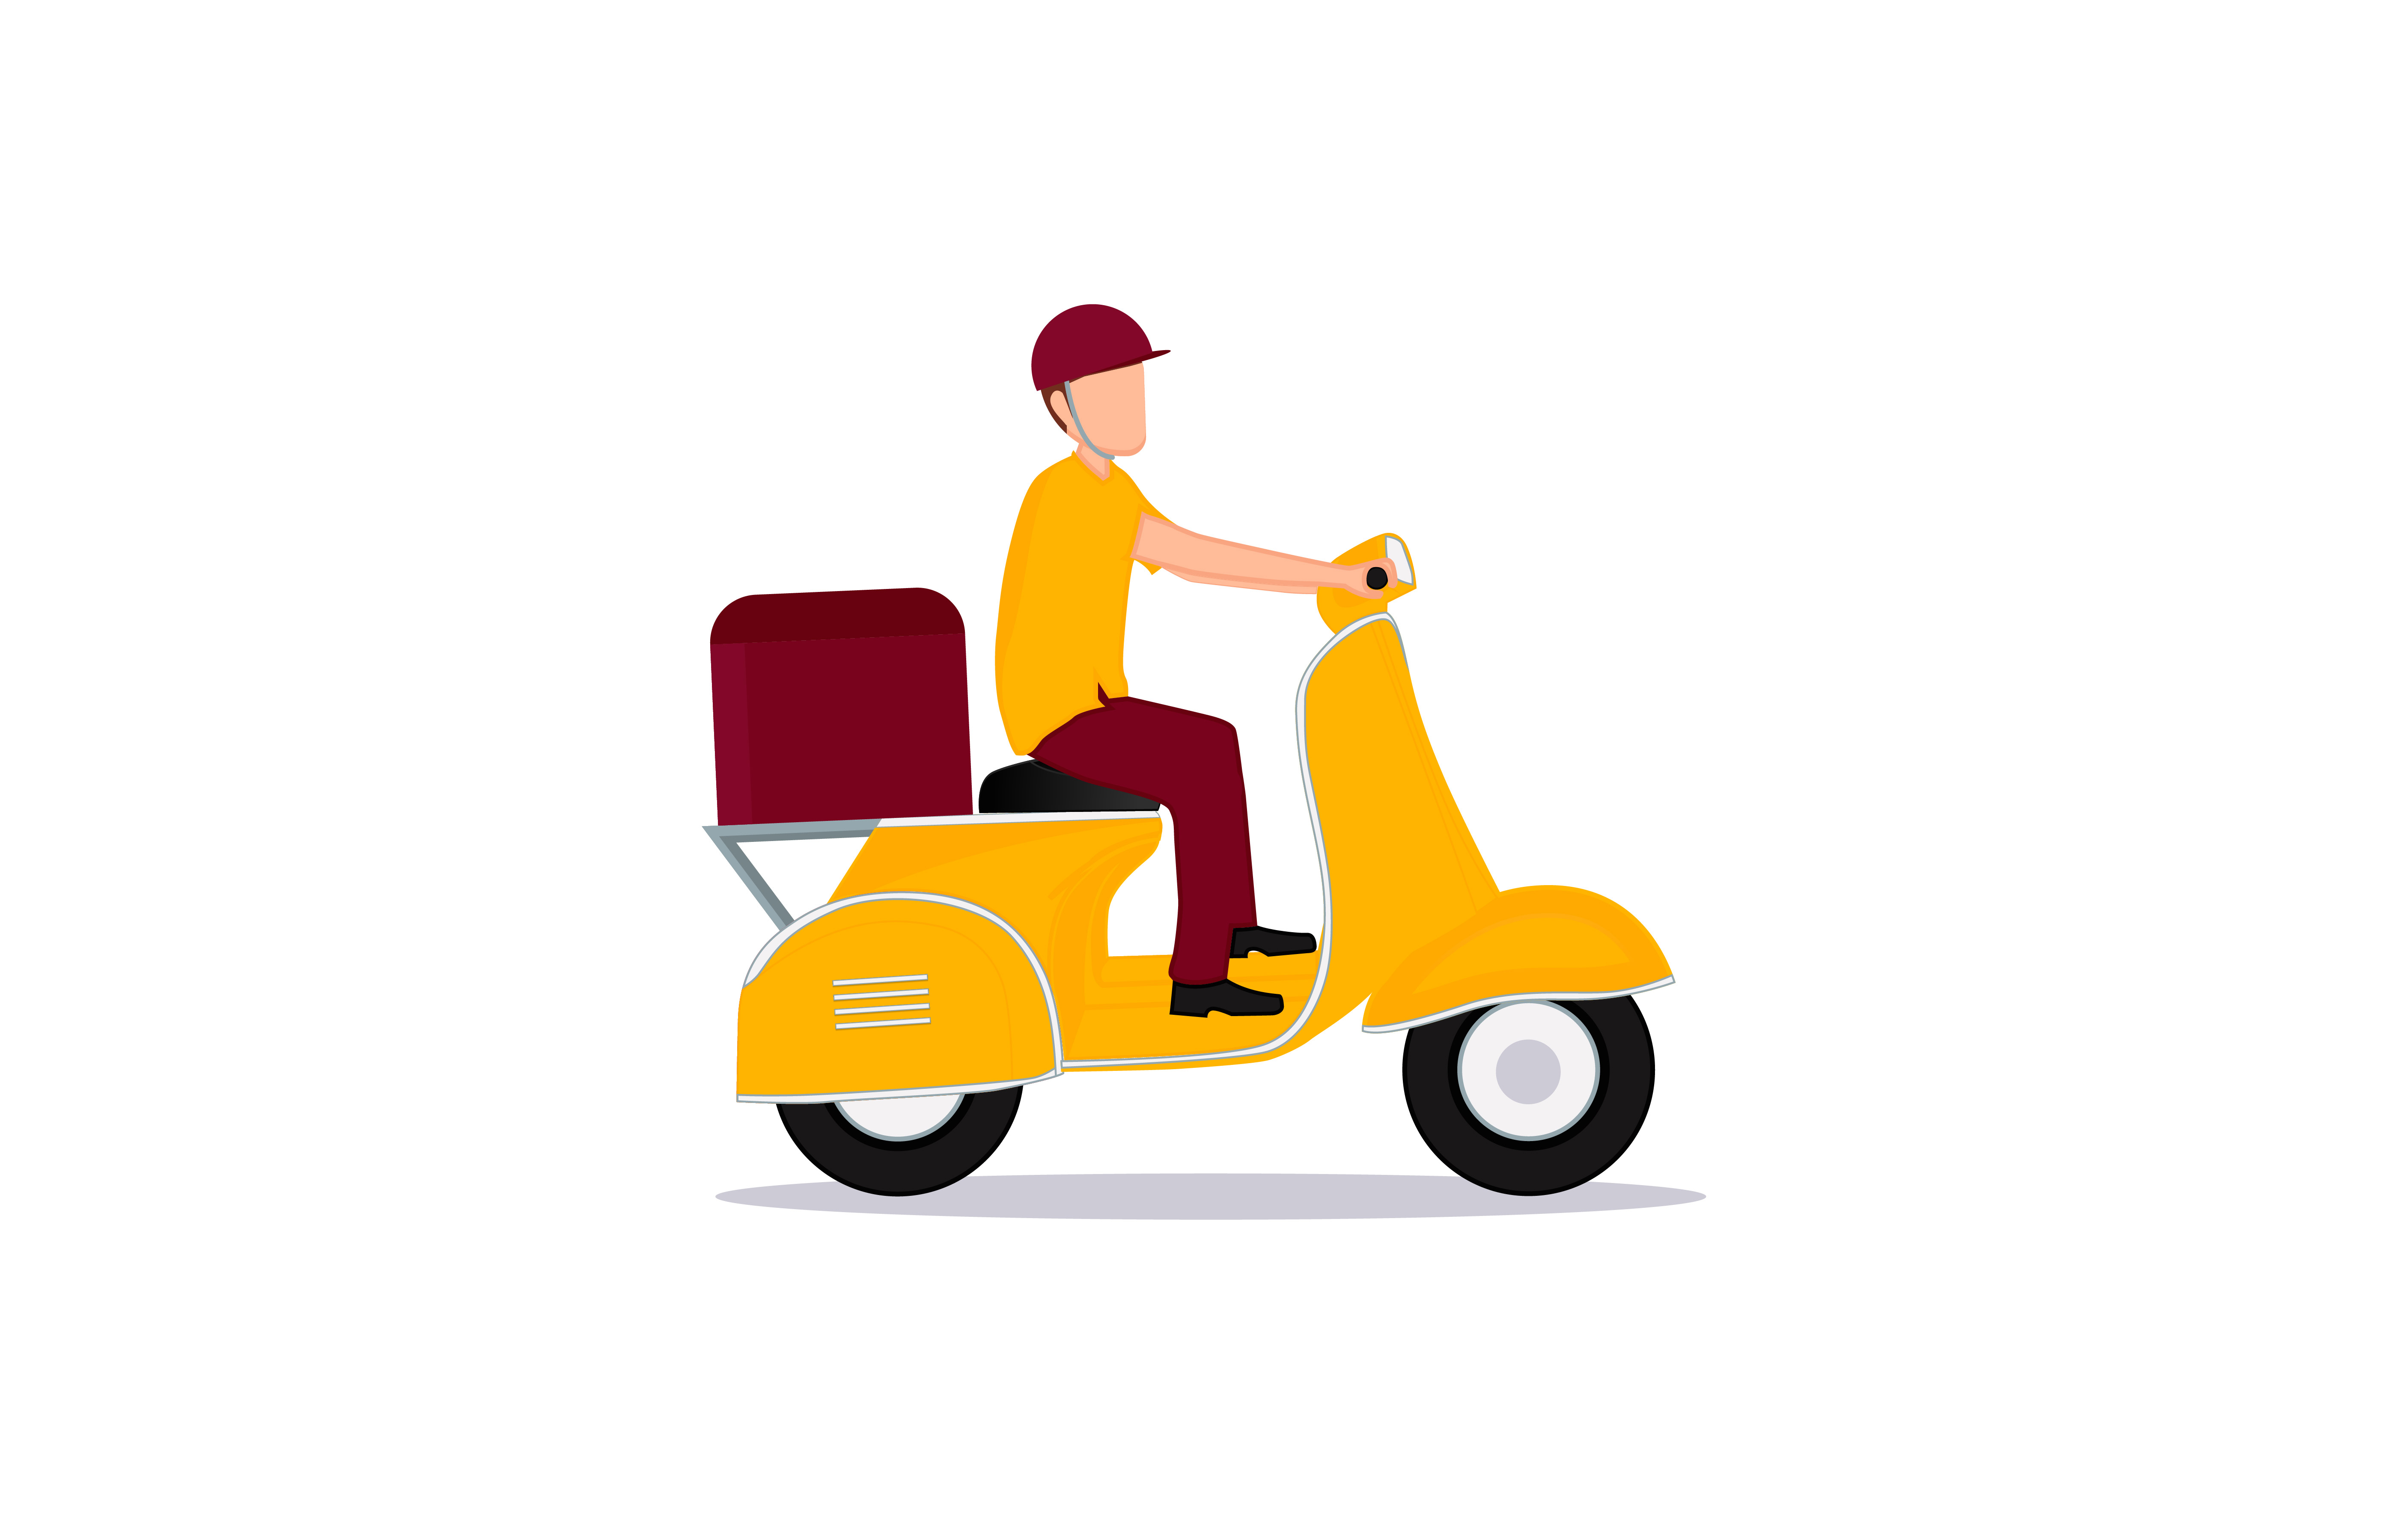 Download Free Delivery Service Motorcycle Design Graphic By Ngabeivector for Cricut Explore, Silhouette and other cutting machines.